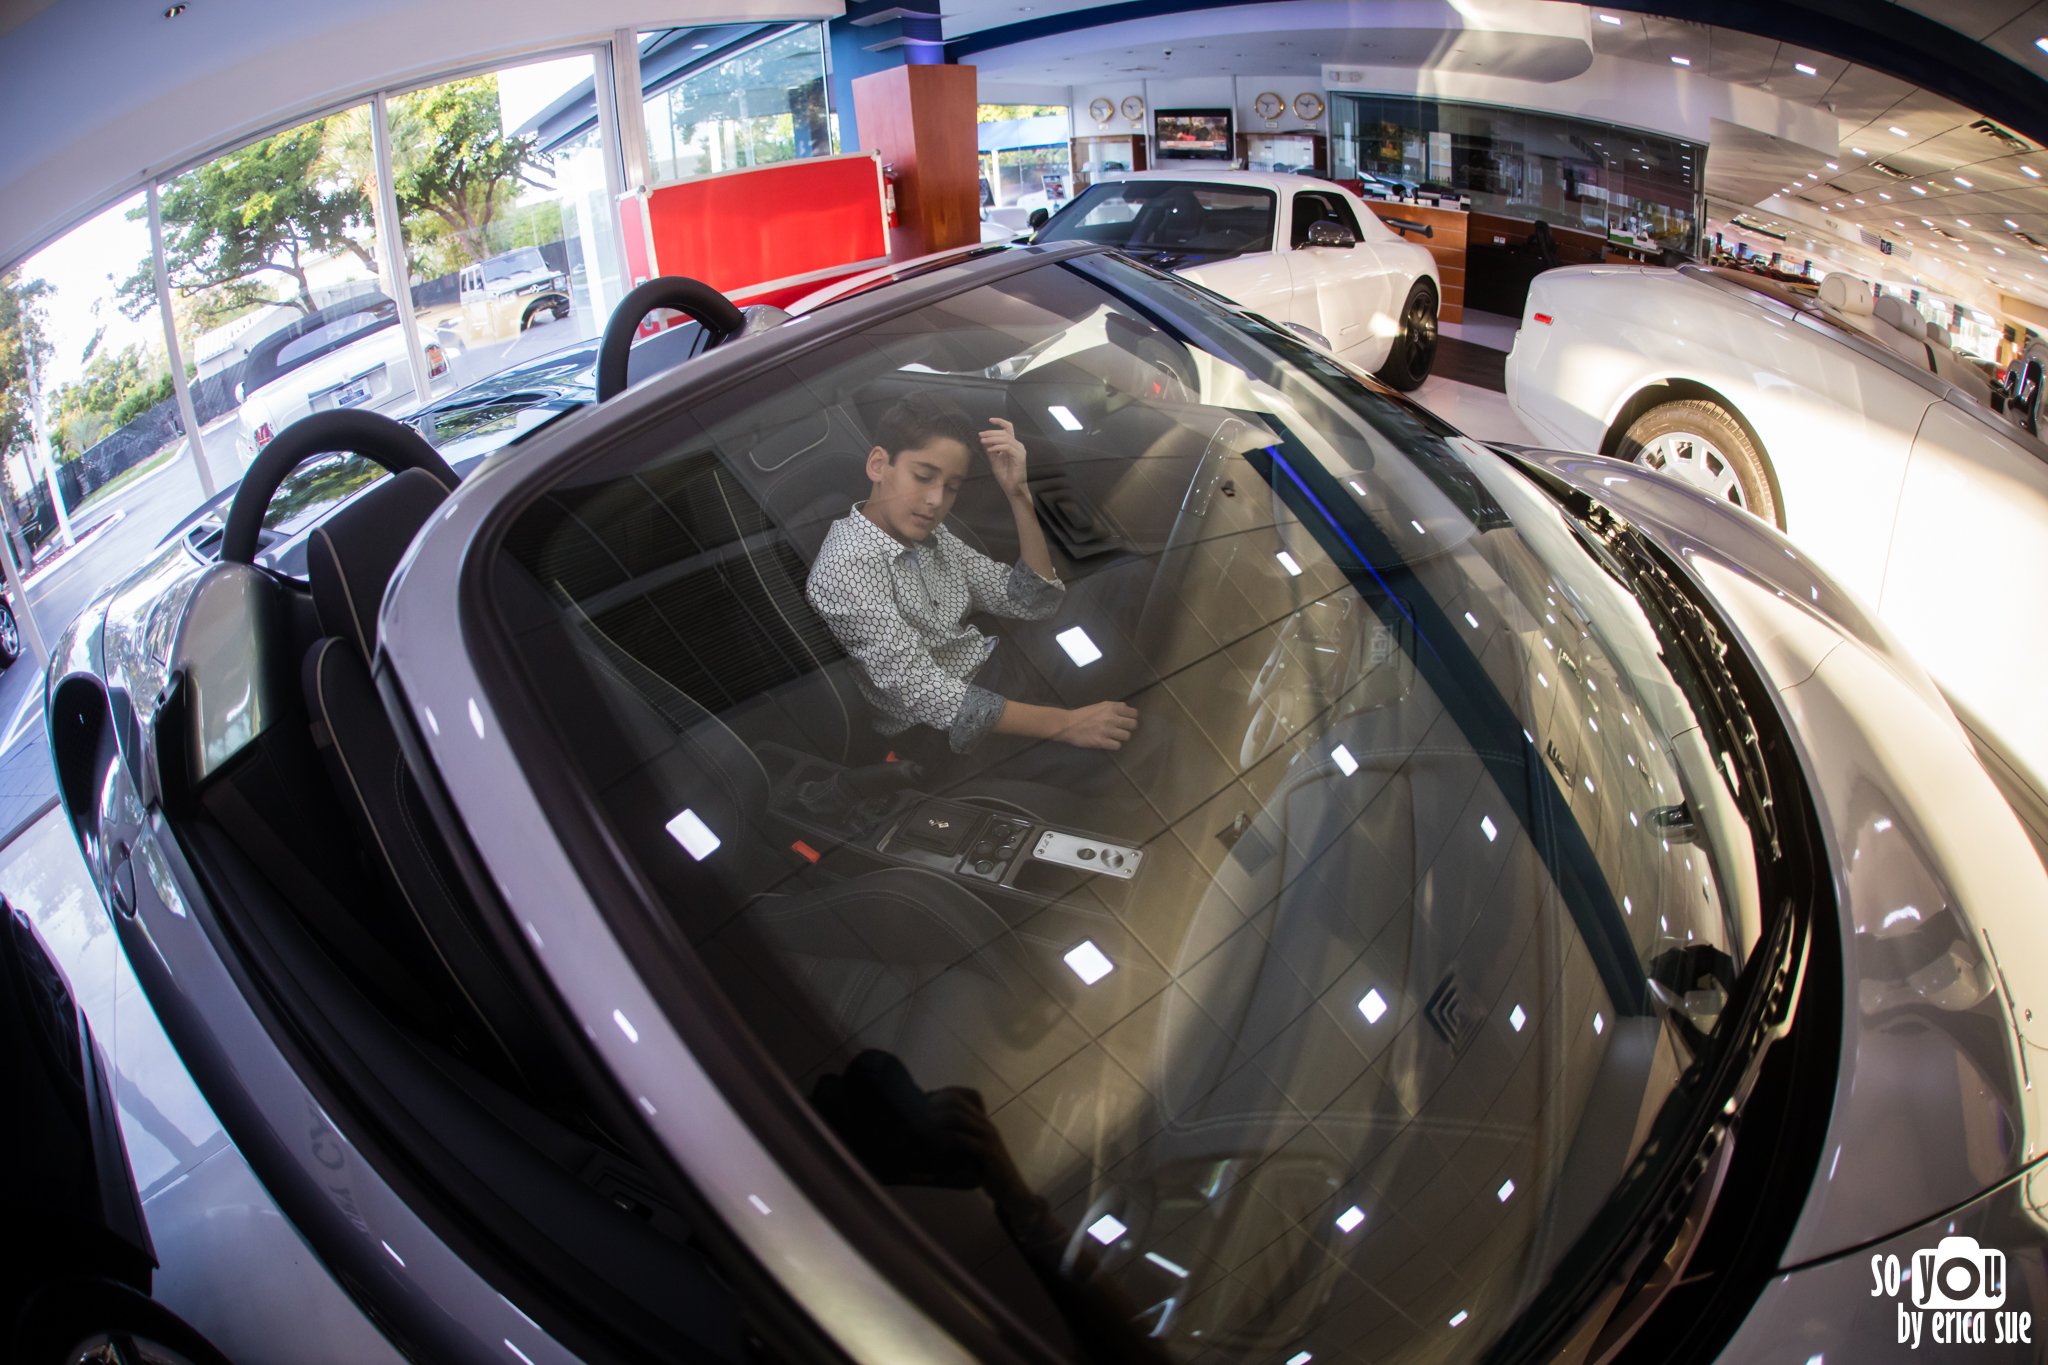 so-you-by-erica-sue-mitzvah-photographer-collection-luxury-car-ft-lauderdale-5100.jpg